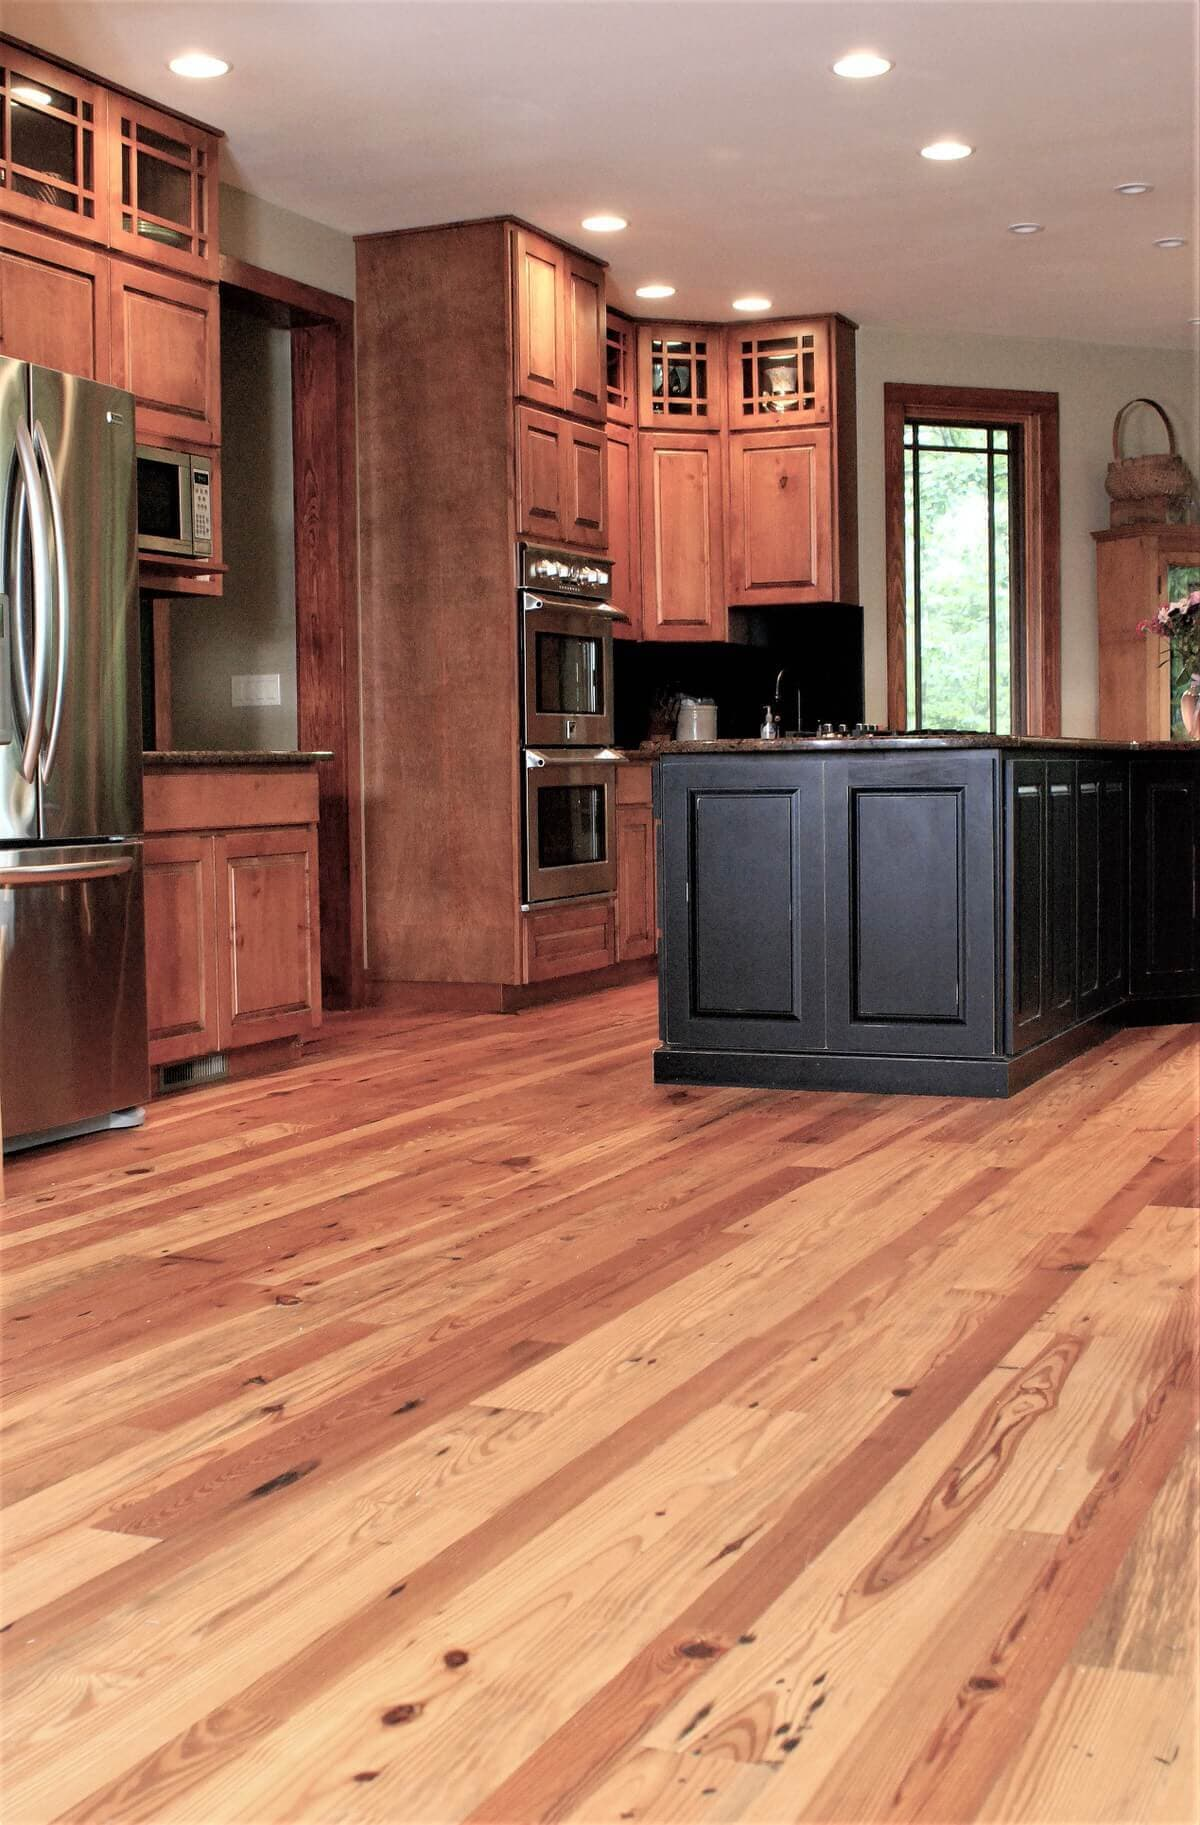 Classic wood floors in kitchen.